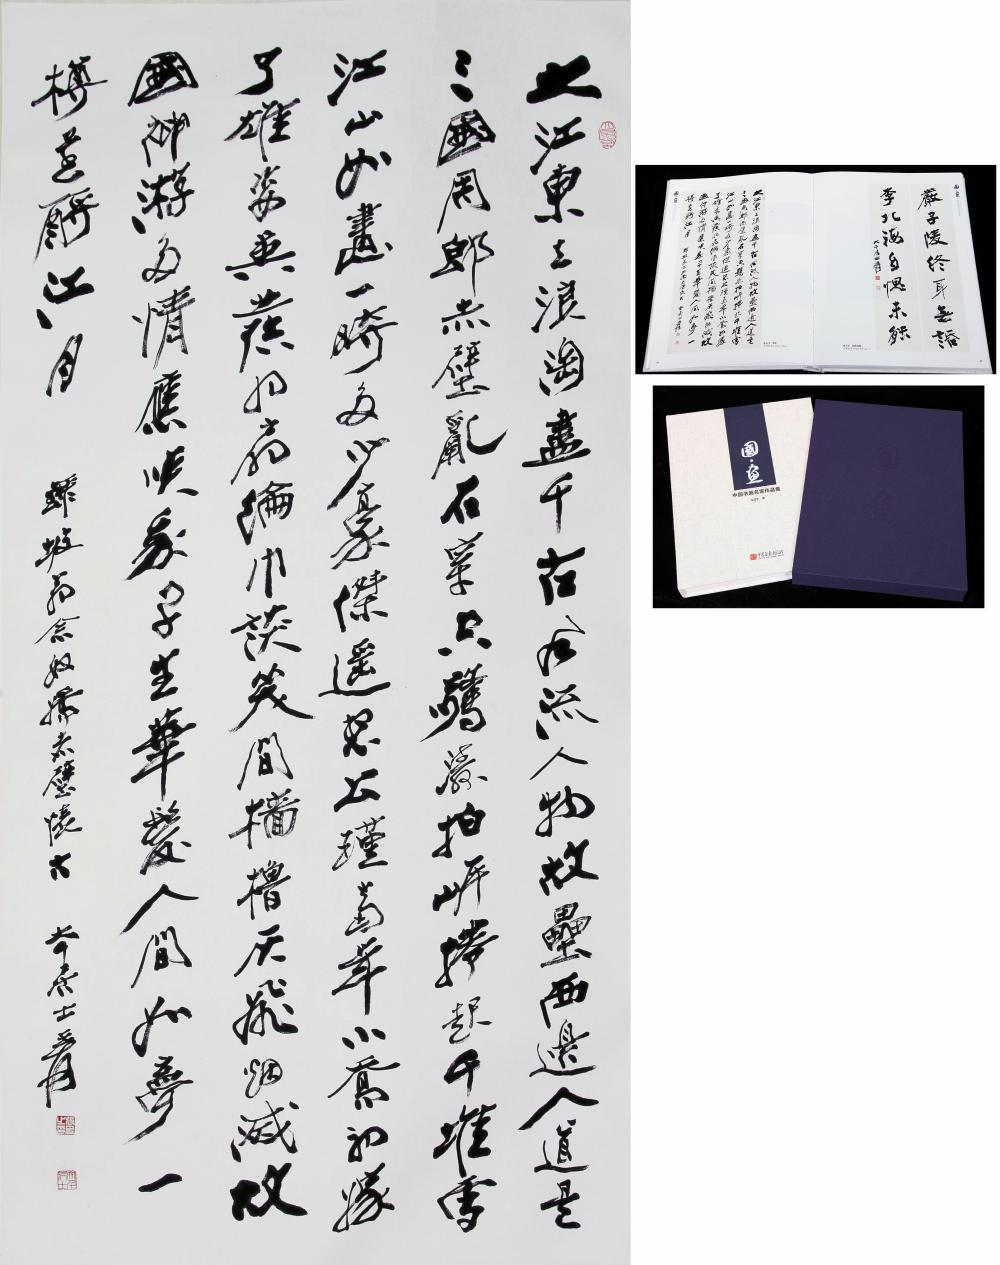 CHINESE CALLIGRAPHY OF A POETRY